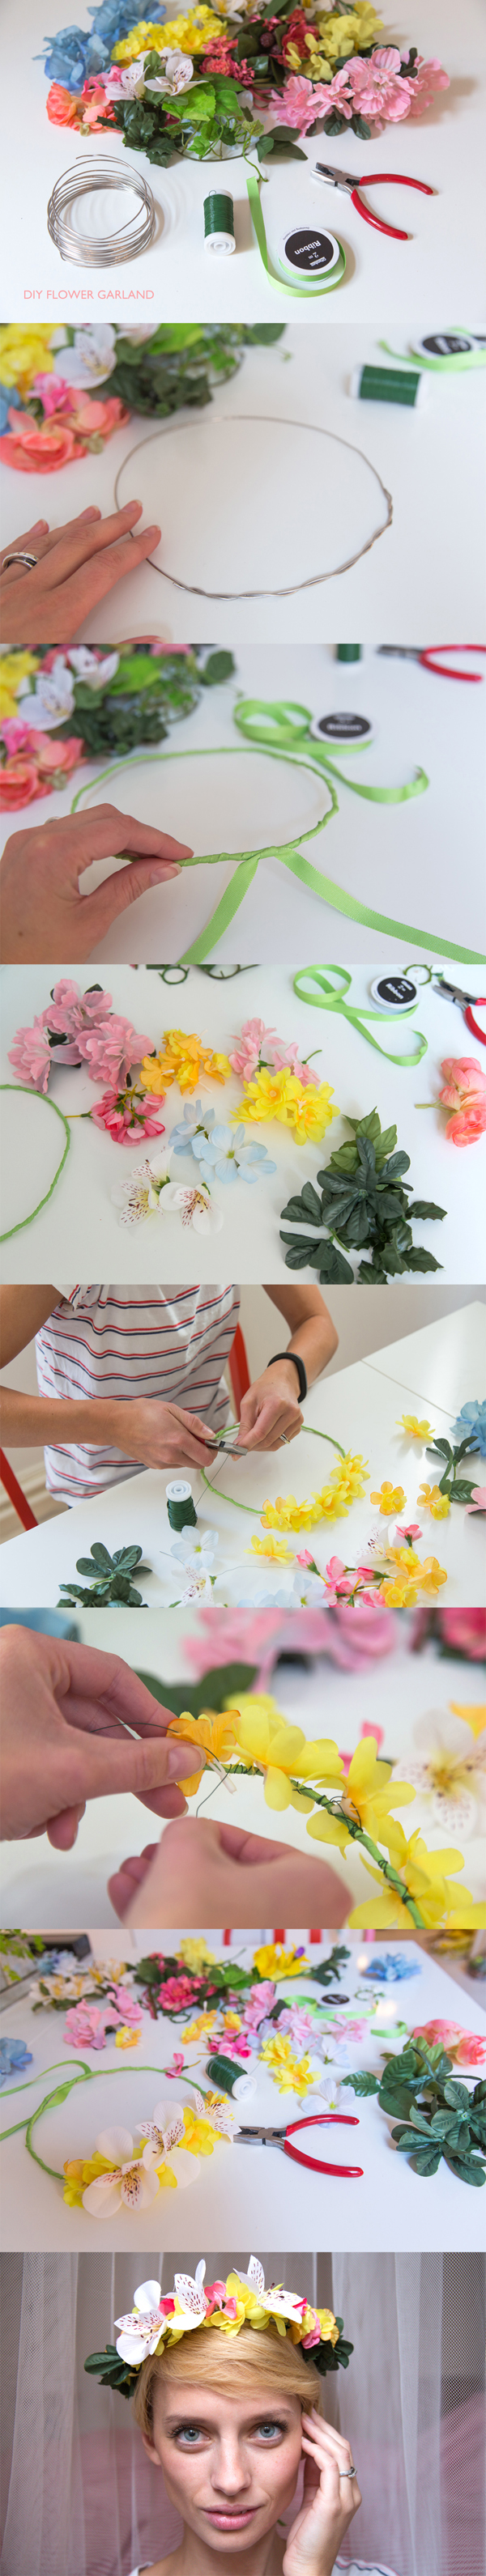 DIY Flower Garland- could even make bigger to hang vines from around a light fixture/chandelier